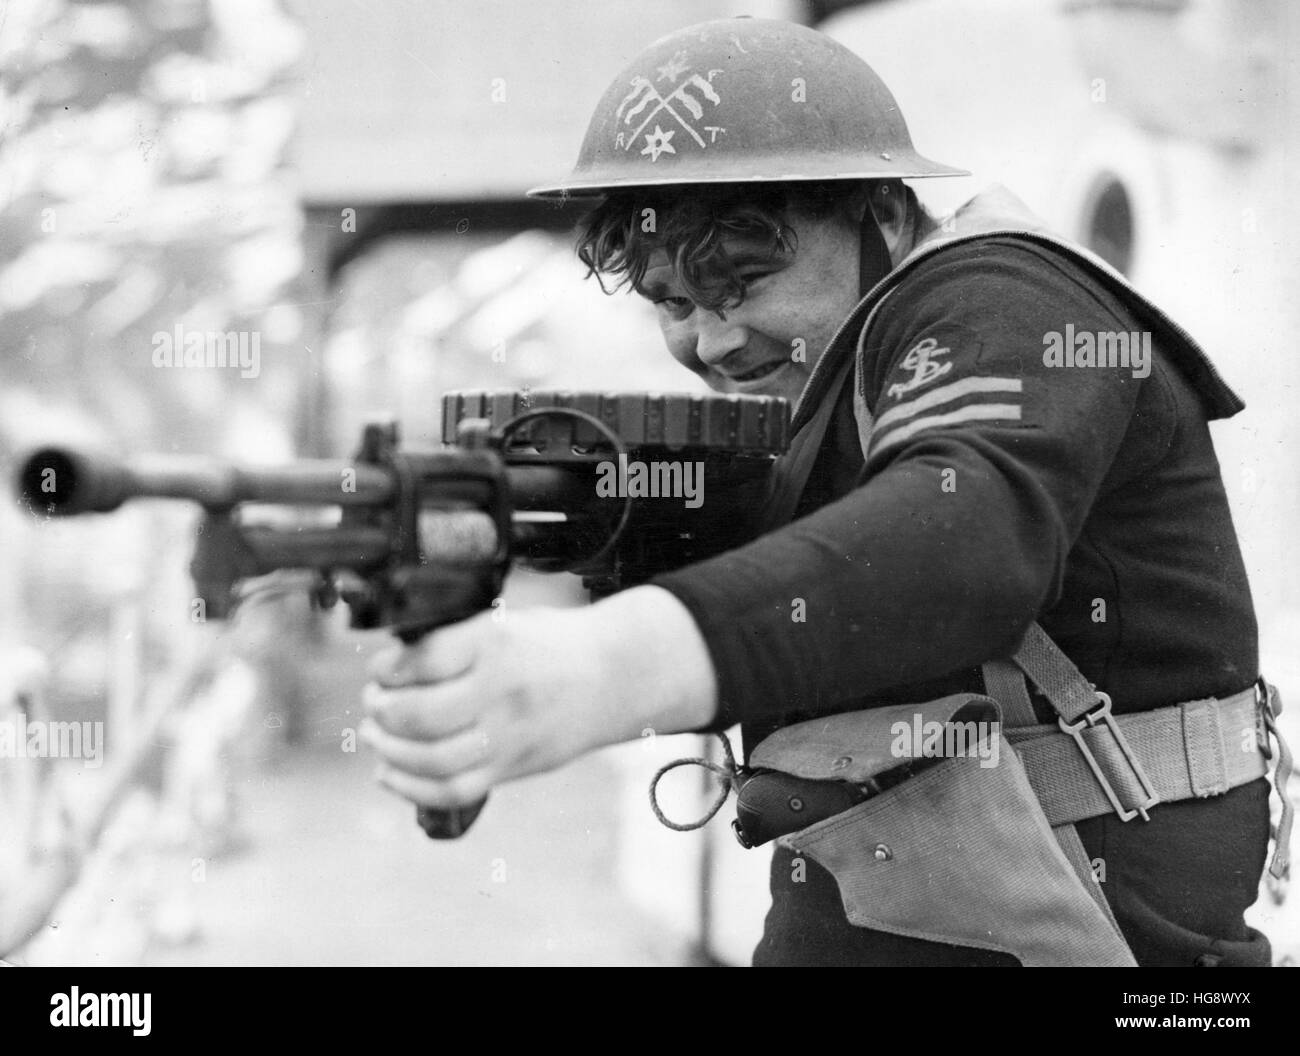 Royal Navy. A seaman from a boarding party carries a machine gun - Stock Image